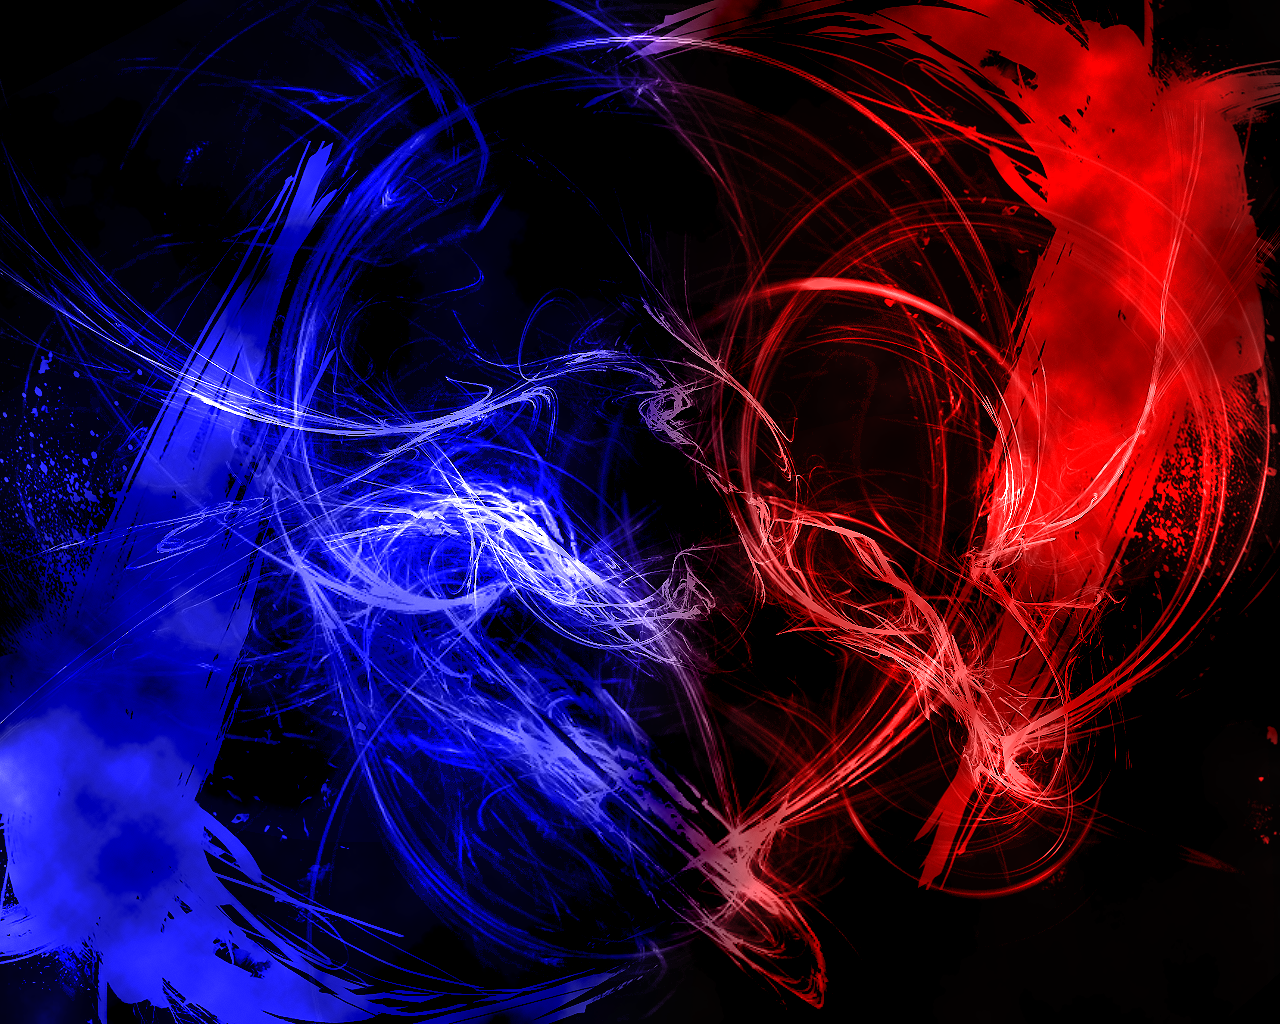 blue and red abstract - photo #2